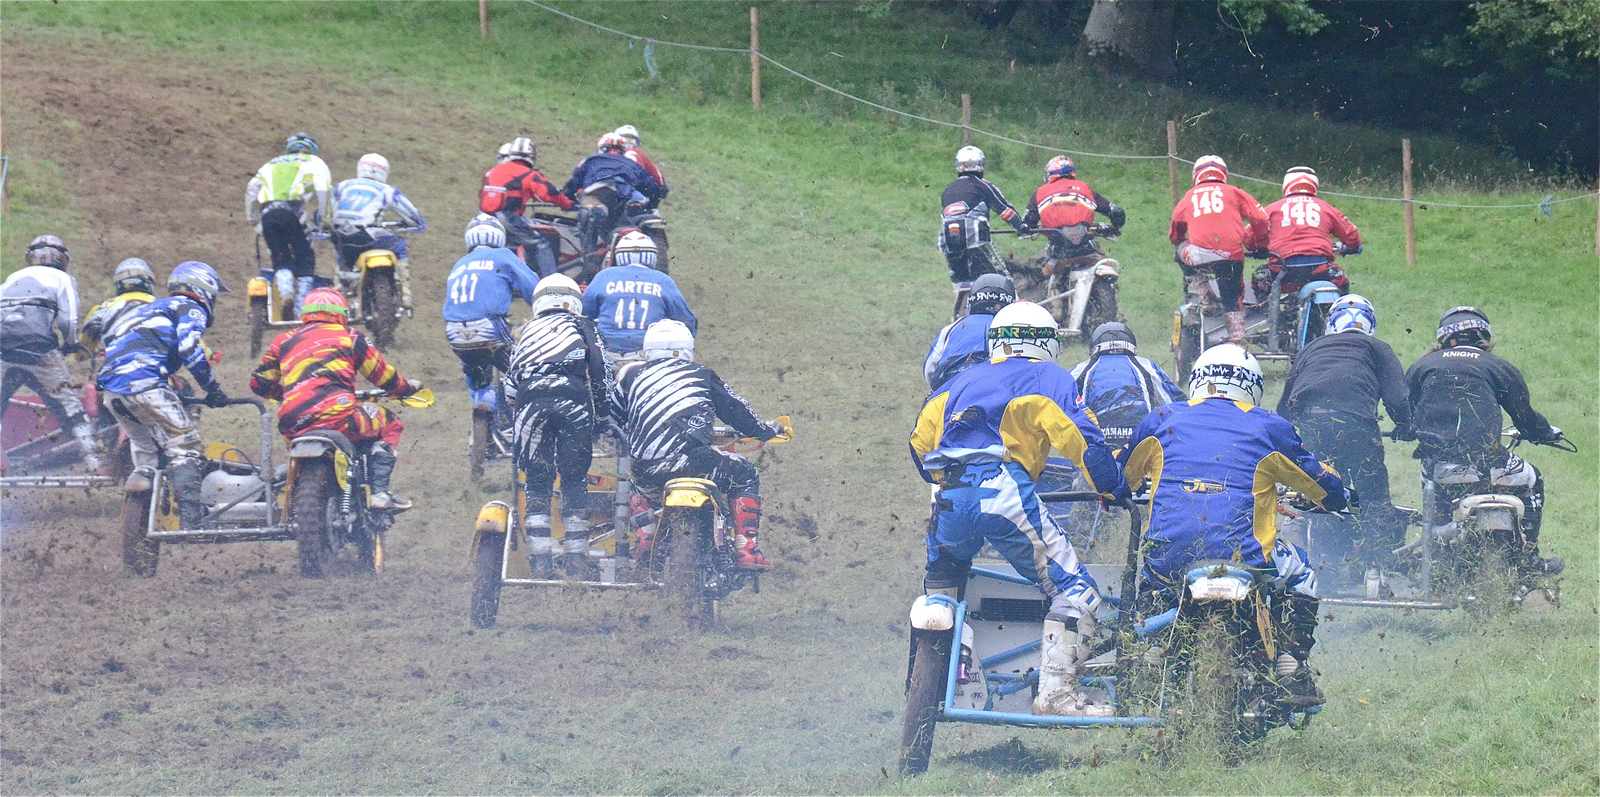 Llanthony Classic Scramble Photos September 2015 classicdirtbikerider.com..39